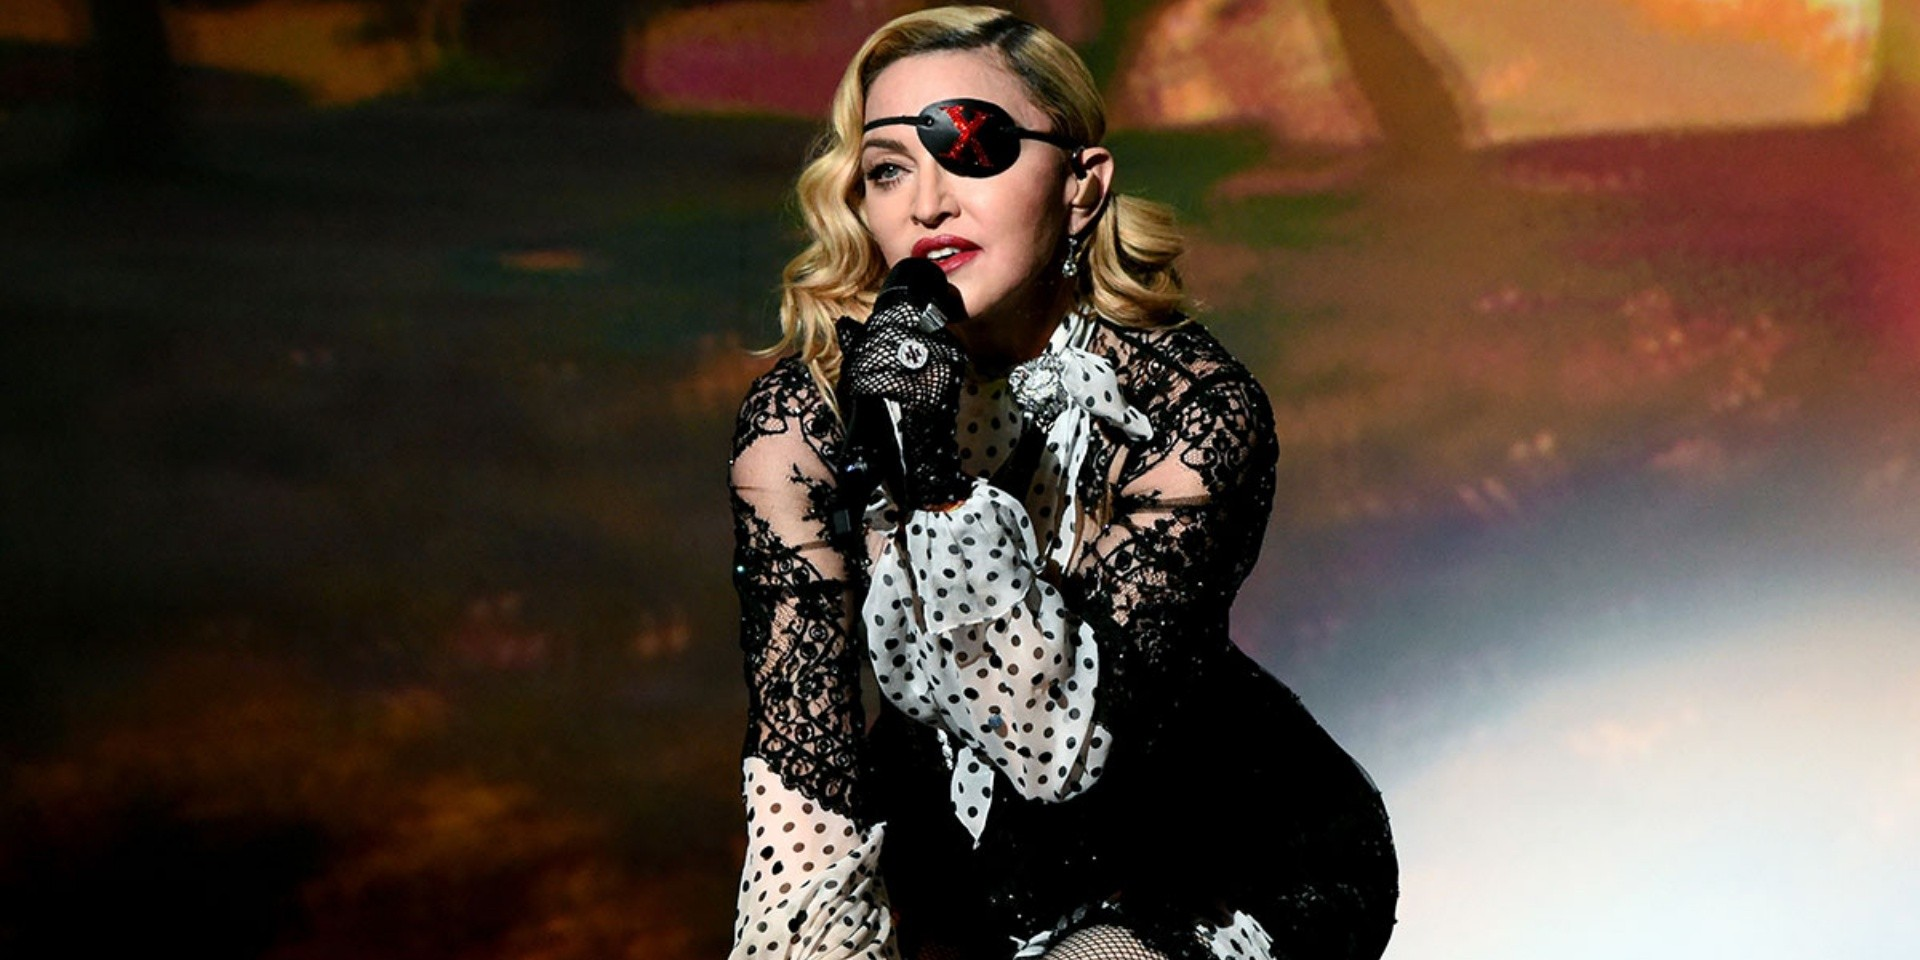 """Madonna """"gives a voice to all marginalized people"""" in new single 'I Rise' – listen"""